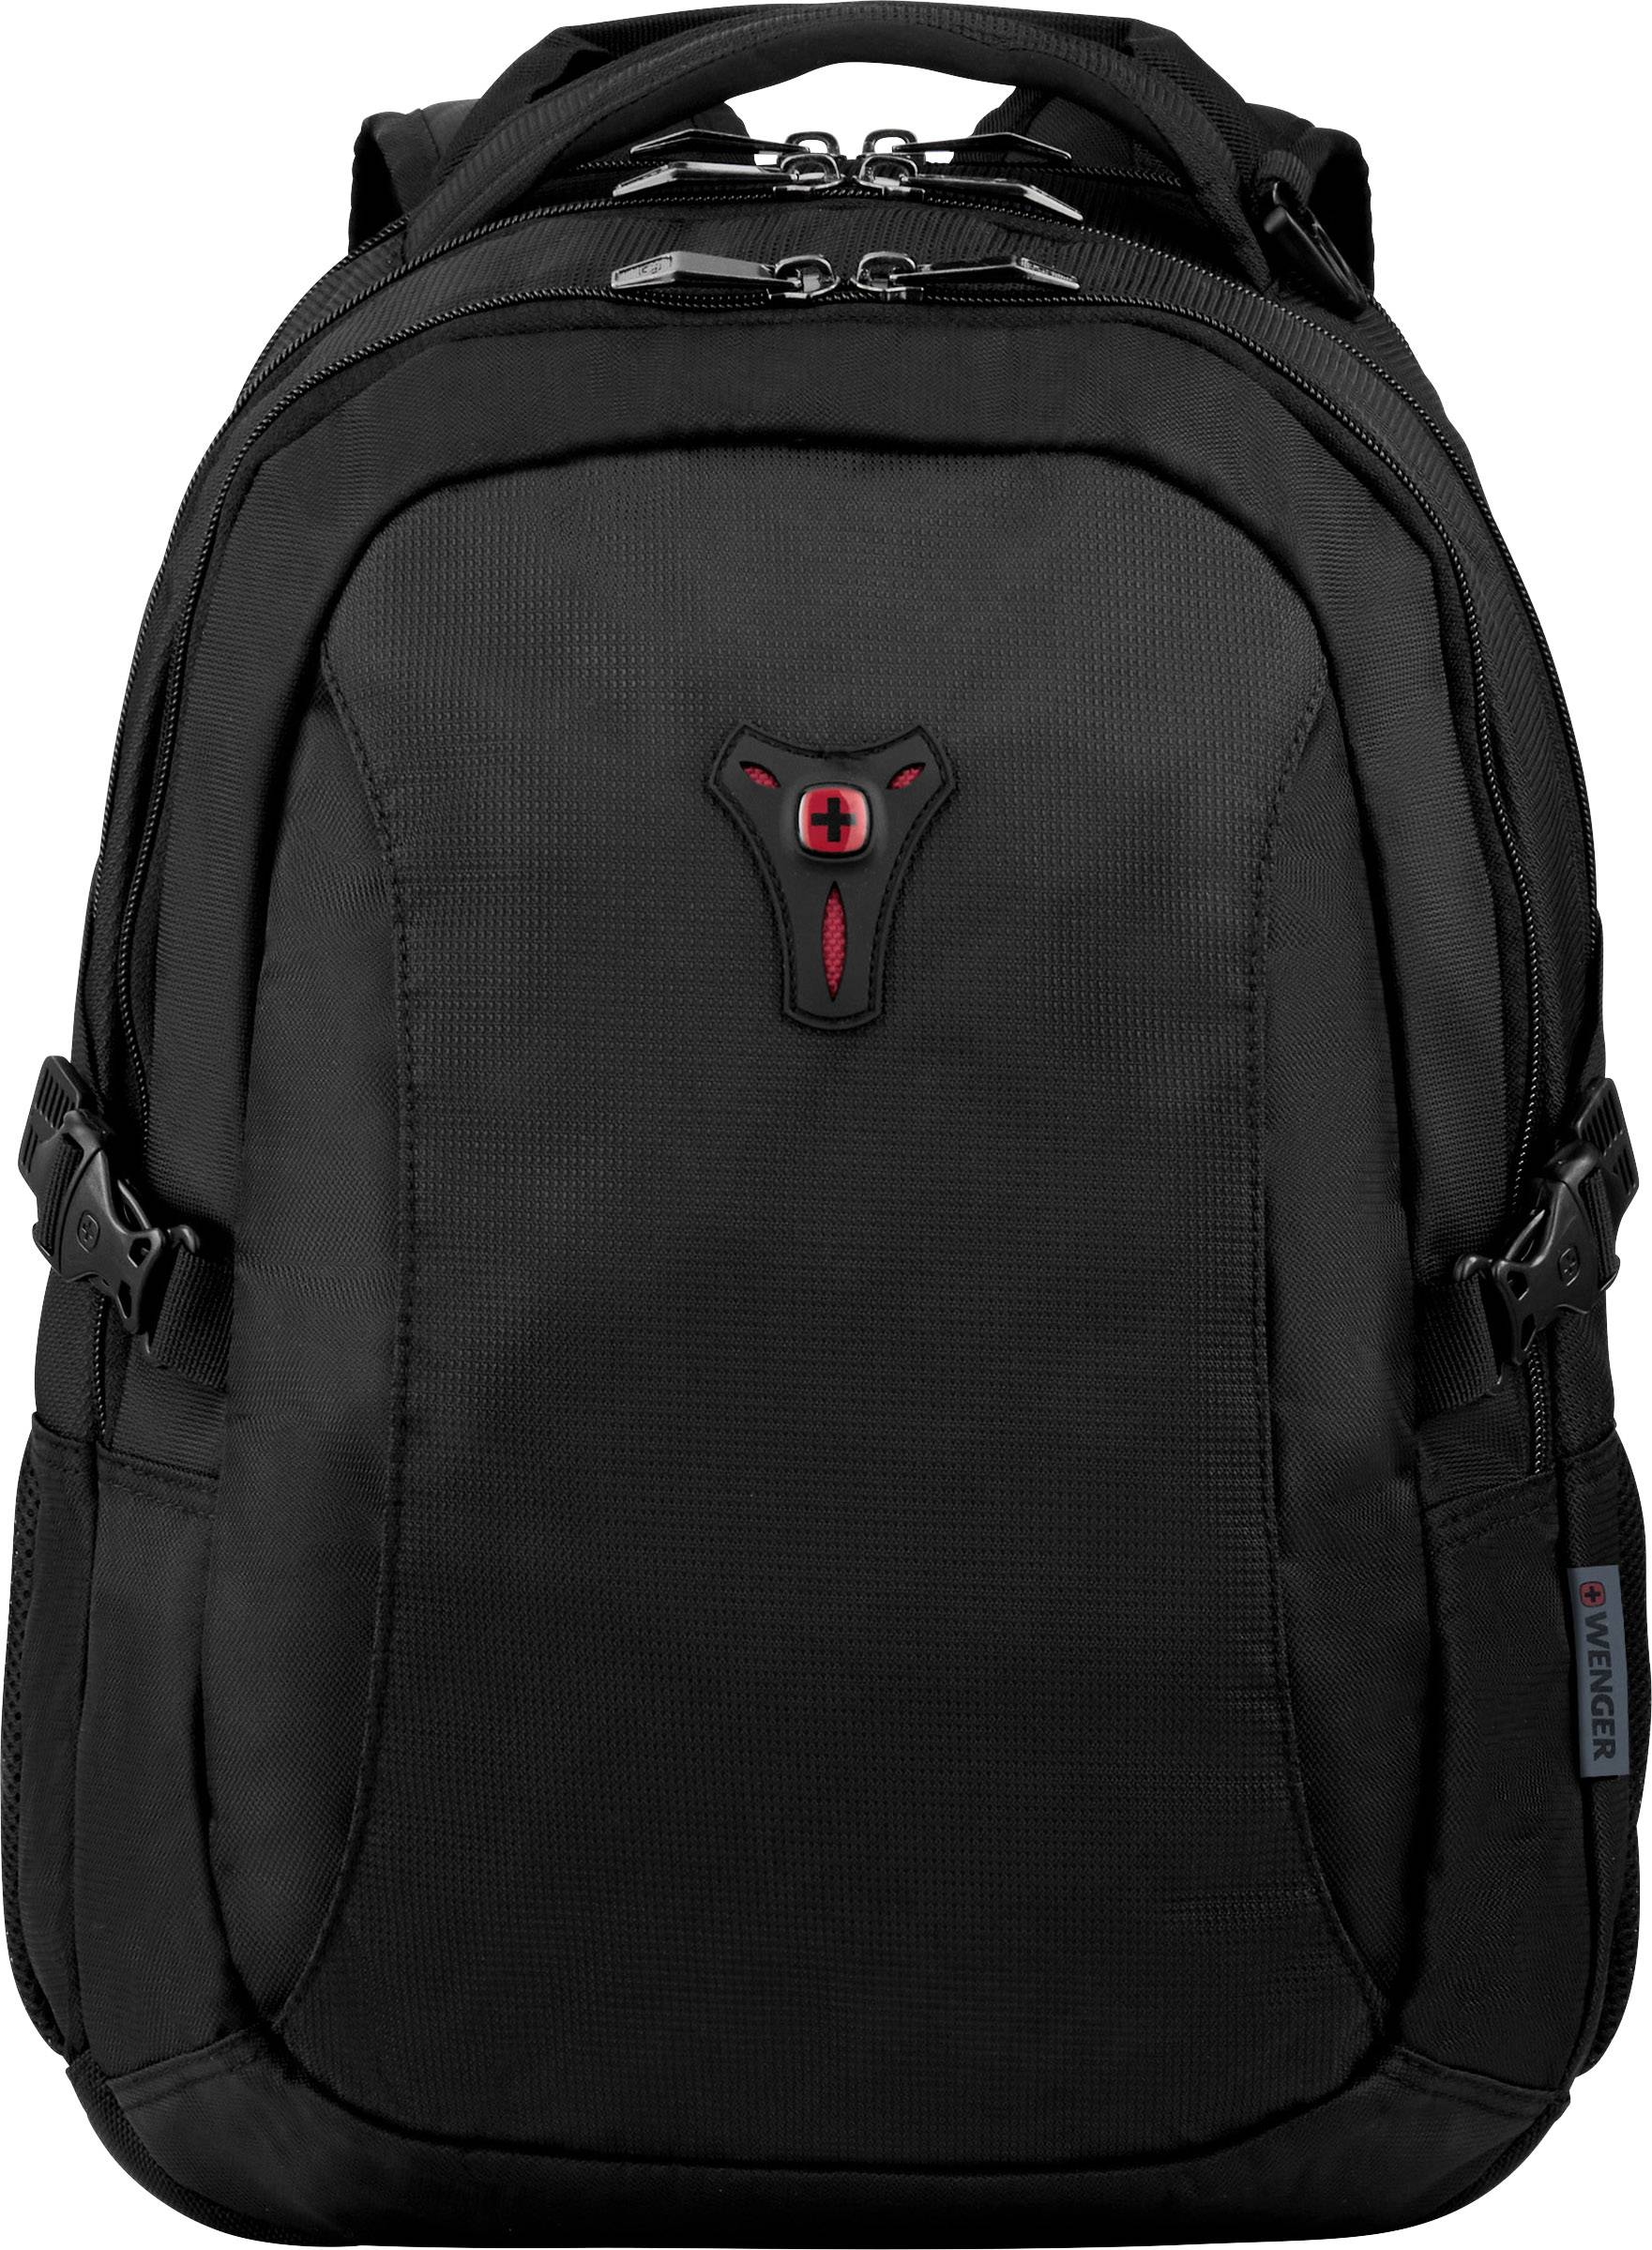 99ff5f515897b Negozio di sconti online,Wenger Laptop Backpack 15 6